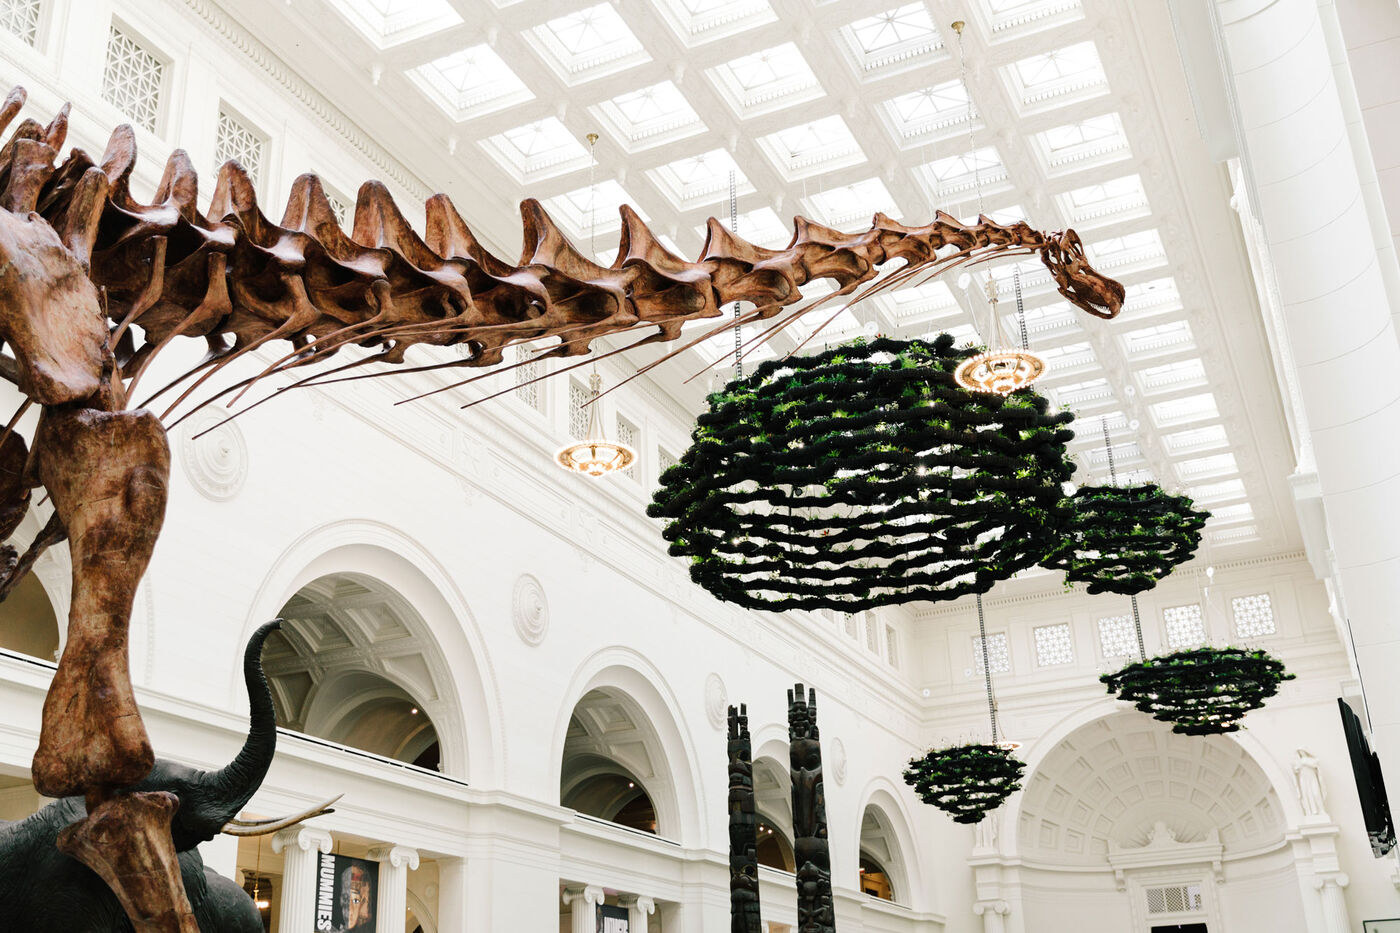 Máximo the Titanosaur and hanging gardens in the Field Museum's main Stanley Field Hall.